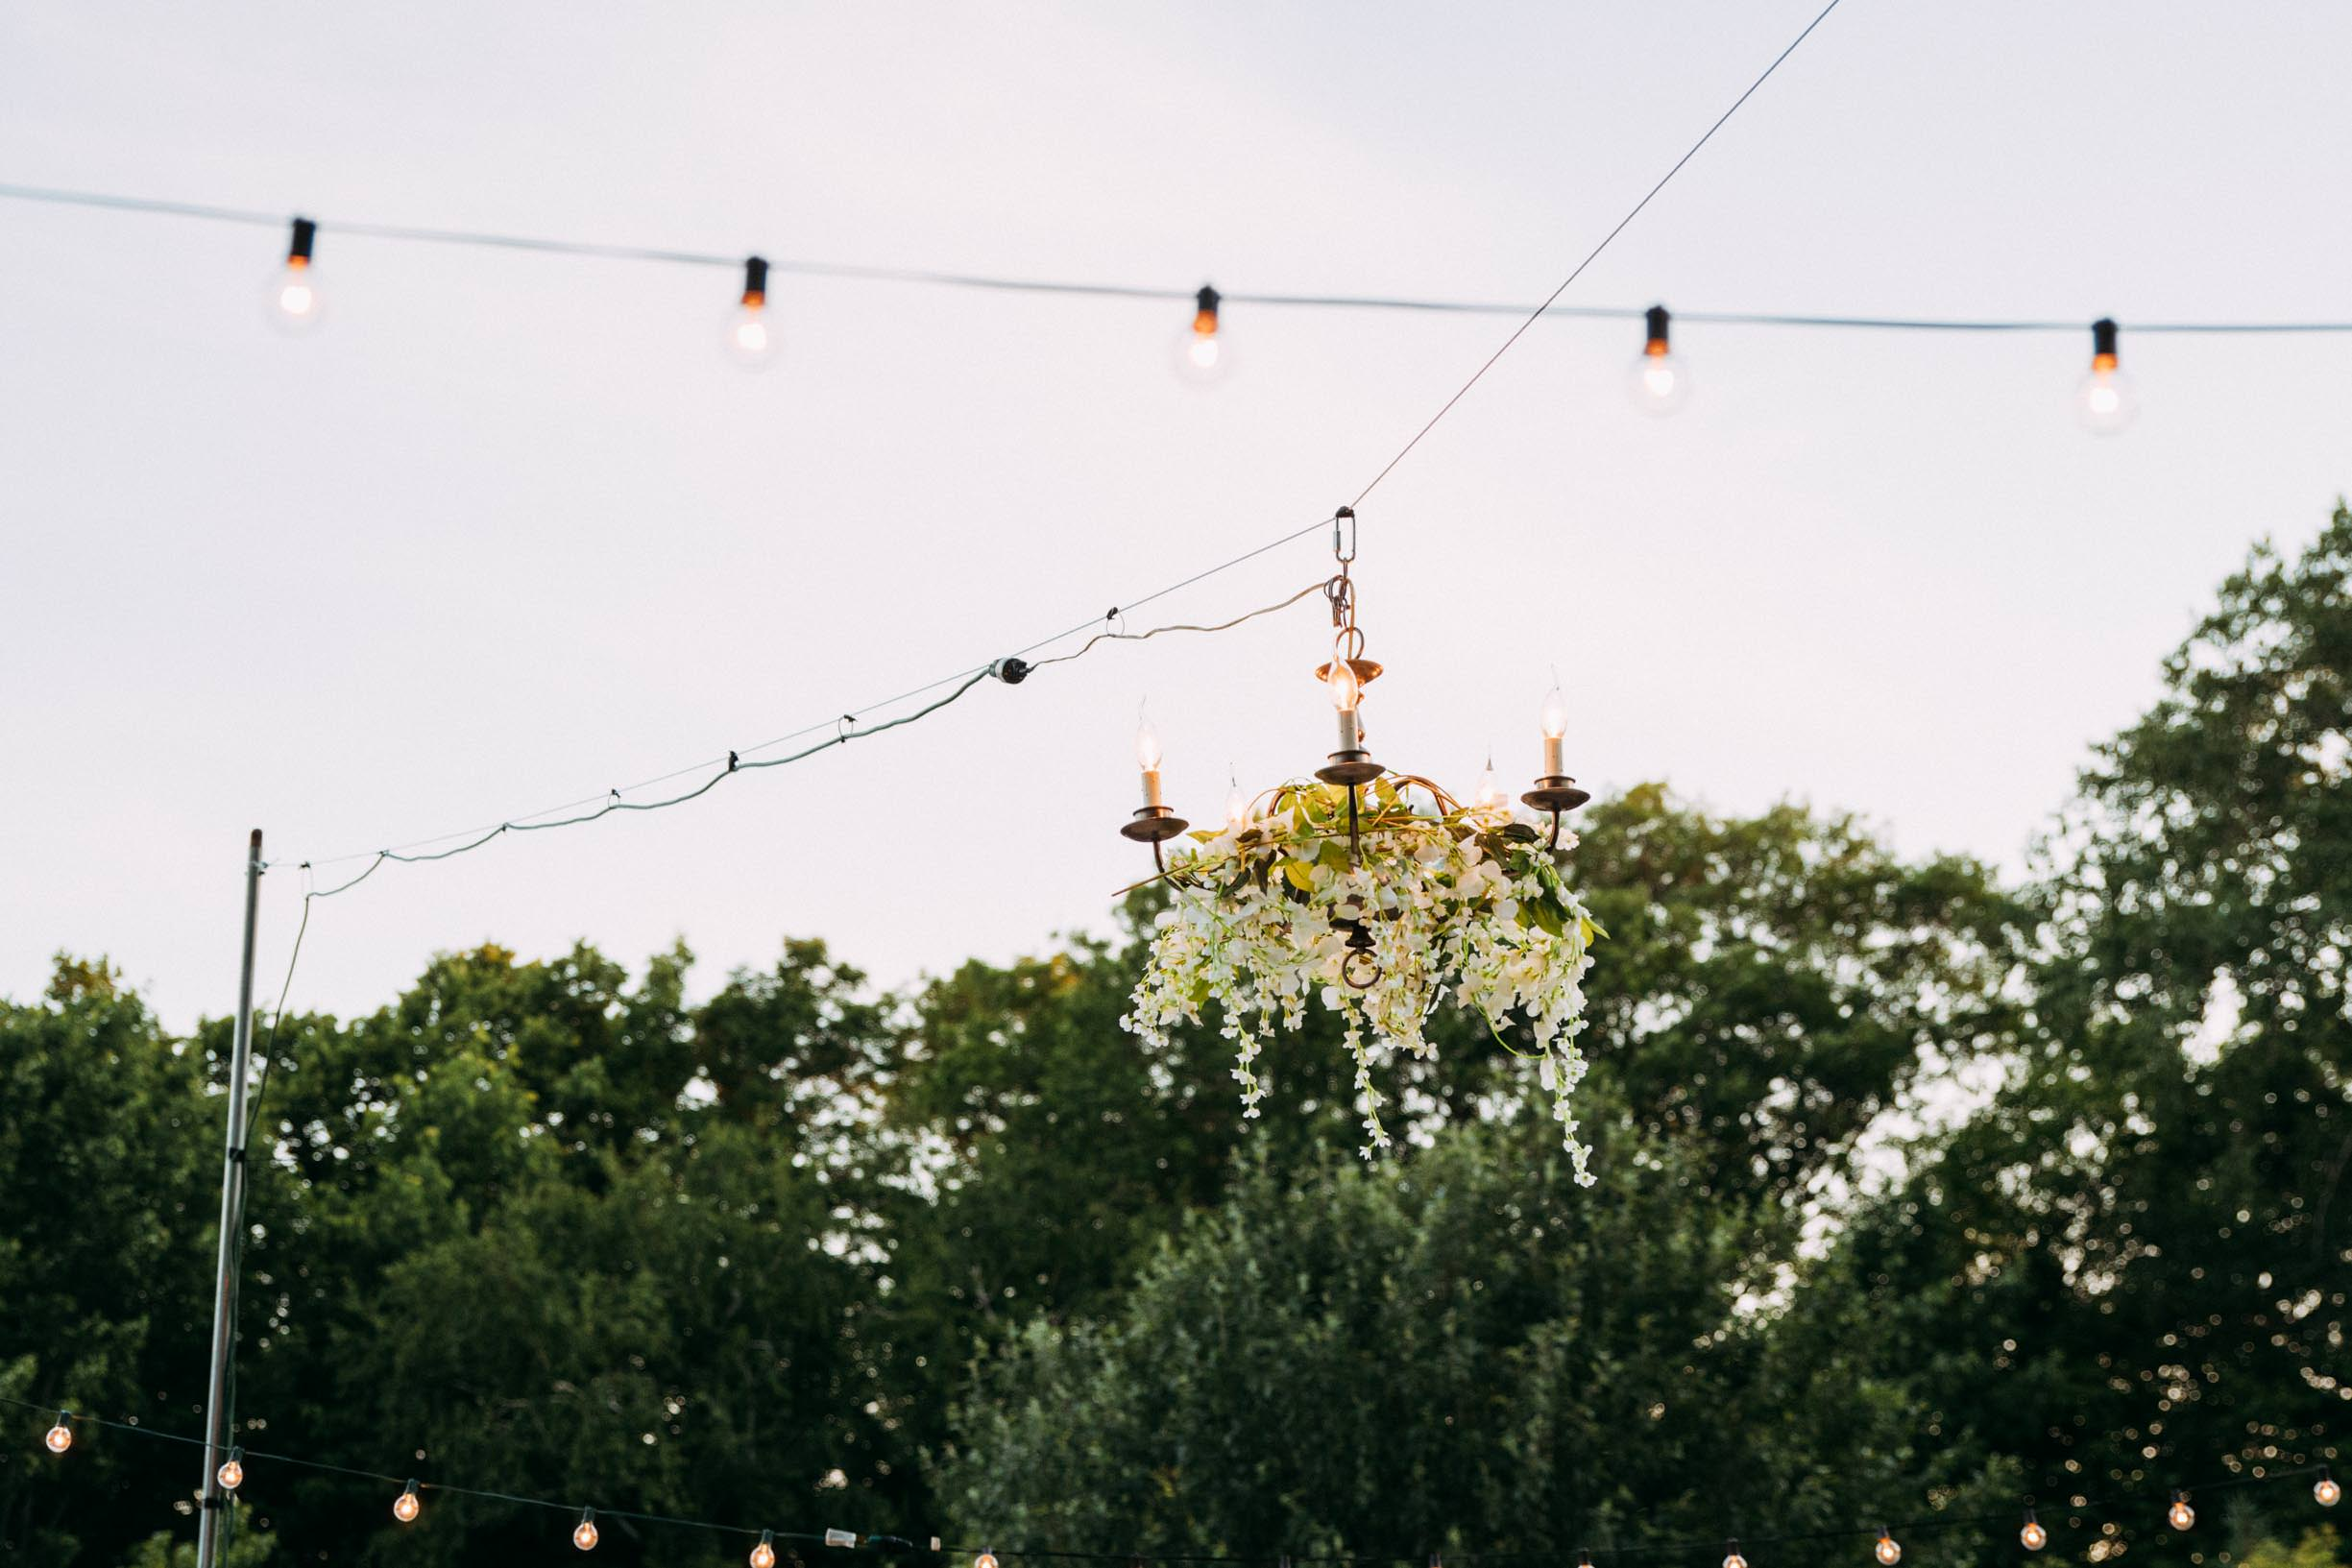 Carley_Trammell_GreenBay_Backyard_Wedding_Blog-104.jpg